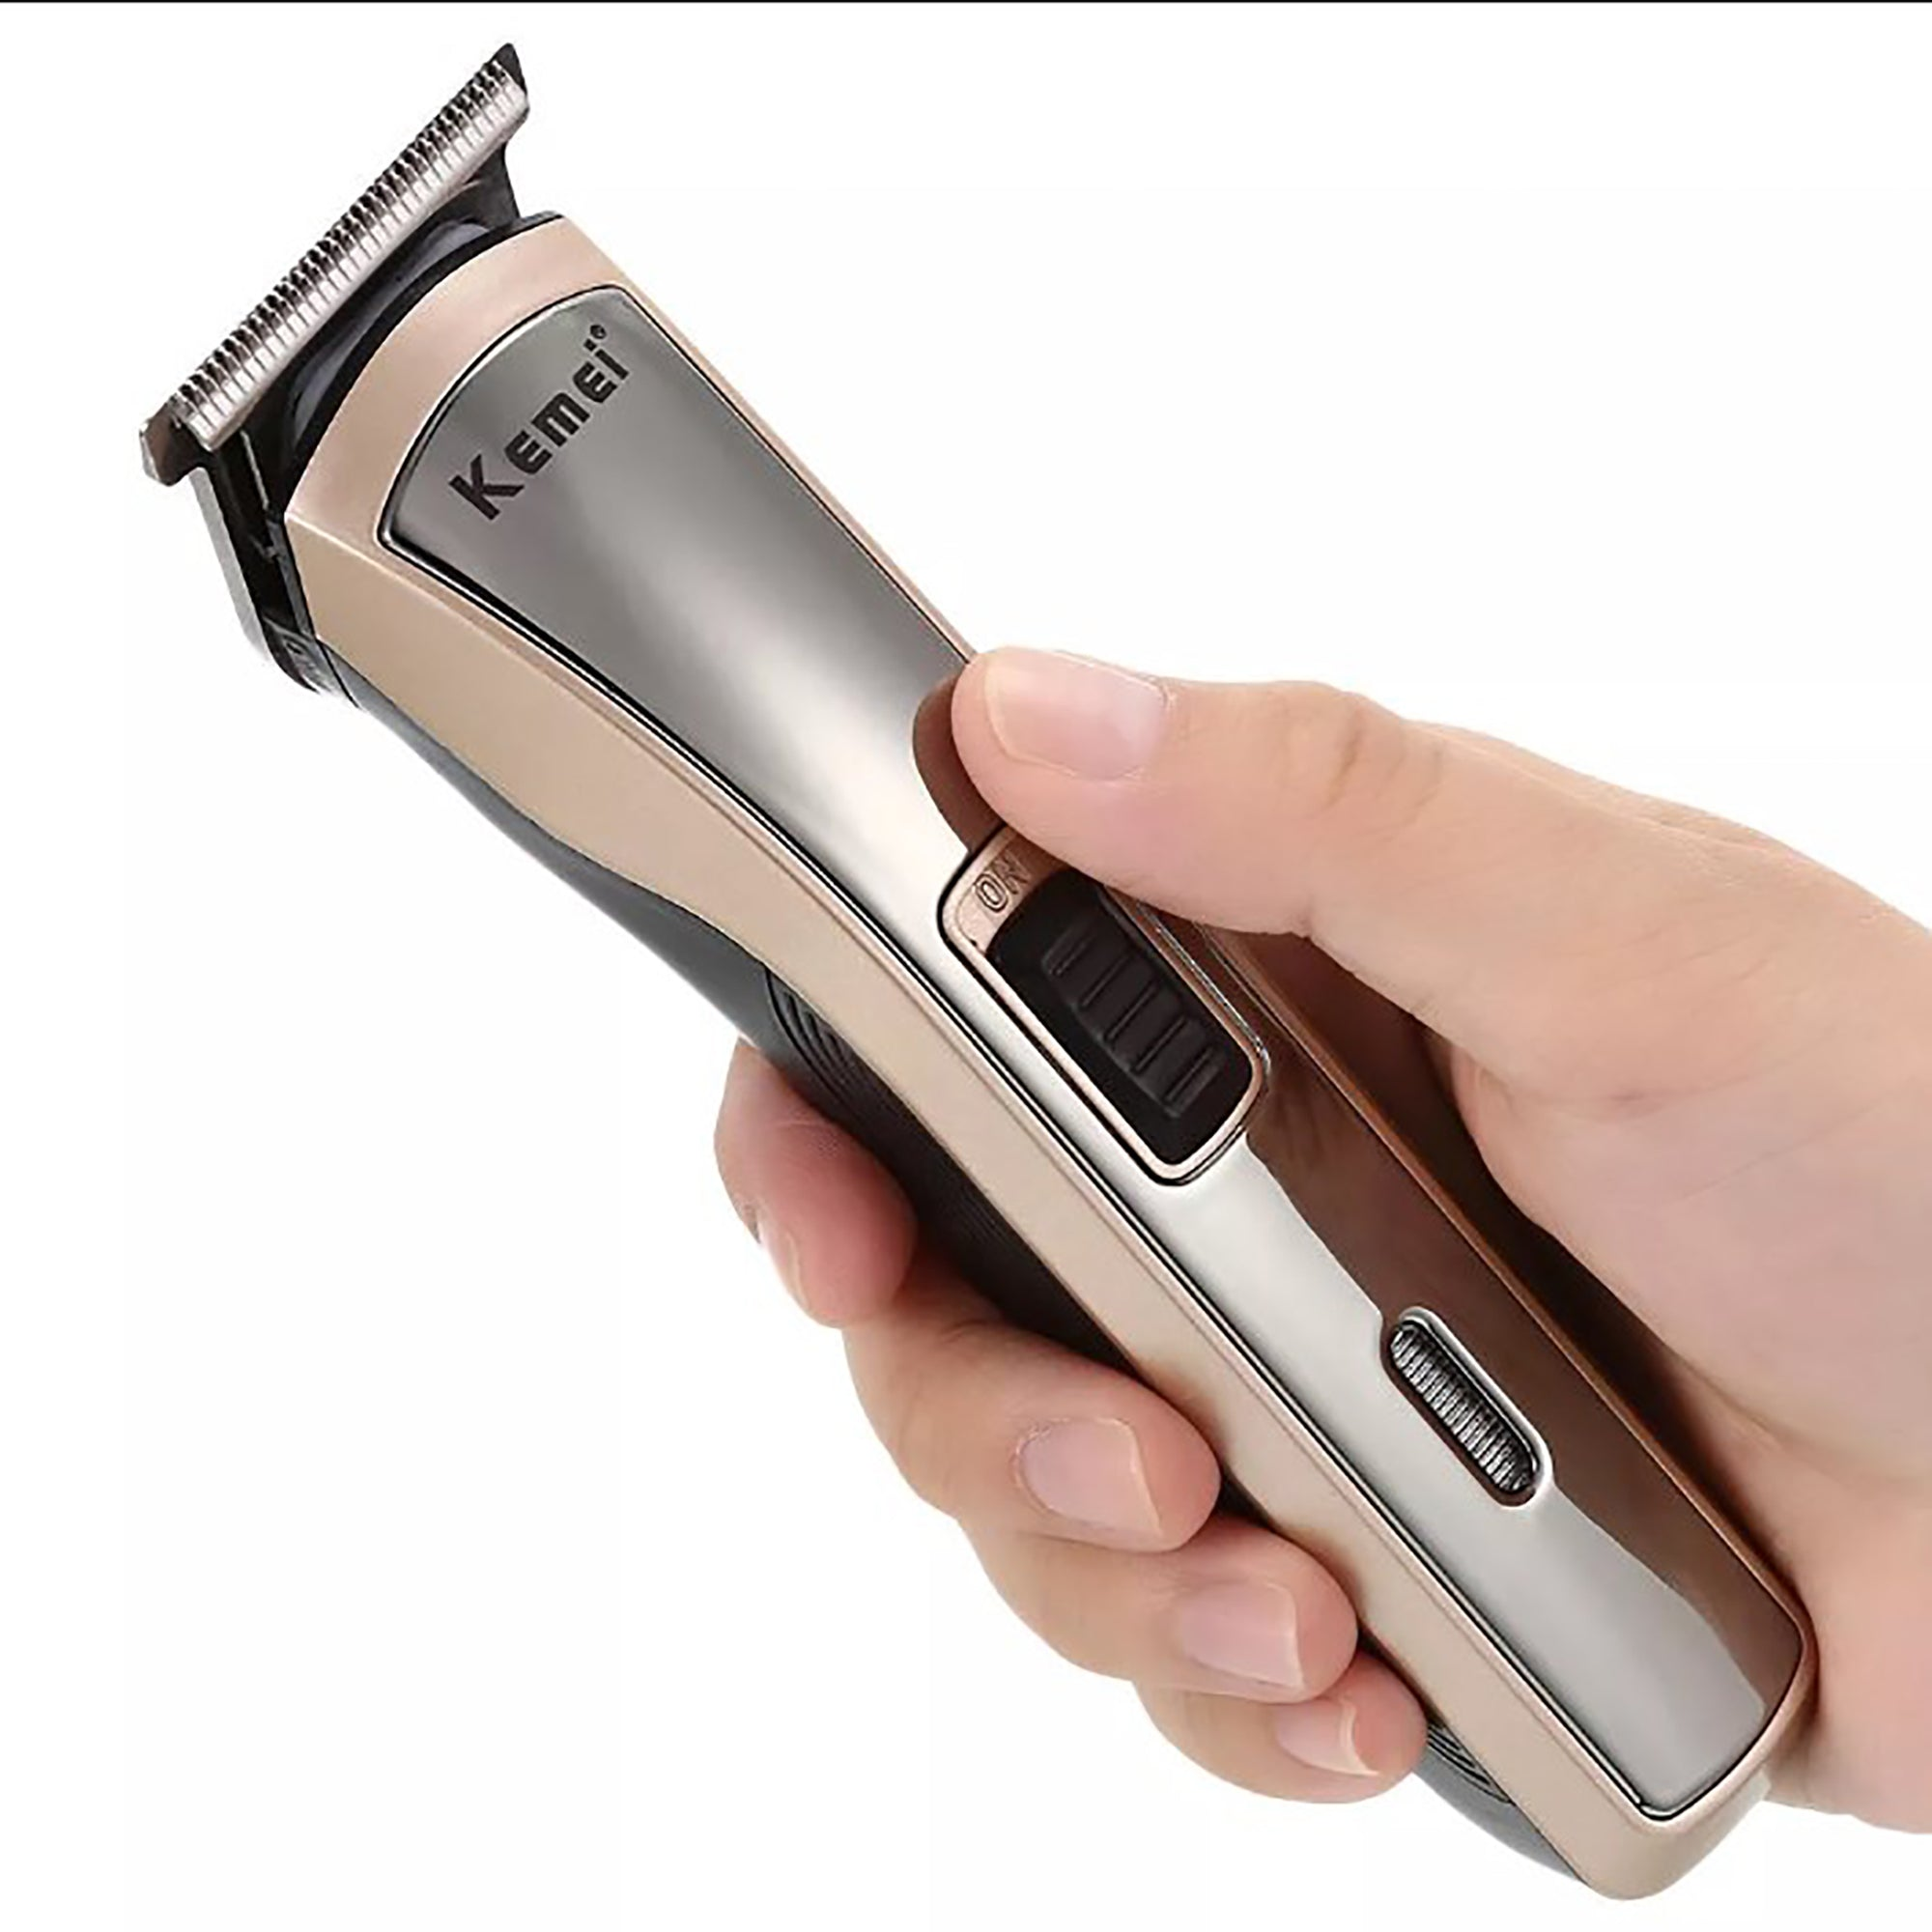 Professional Kemei Rechargeable Cordless Beard/Hair Clipper Km-418-SK0375